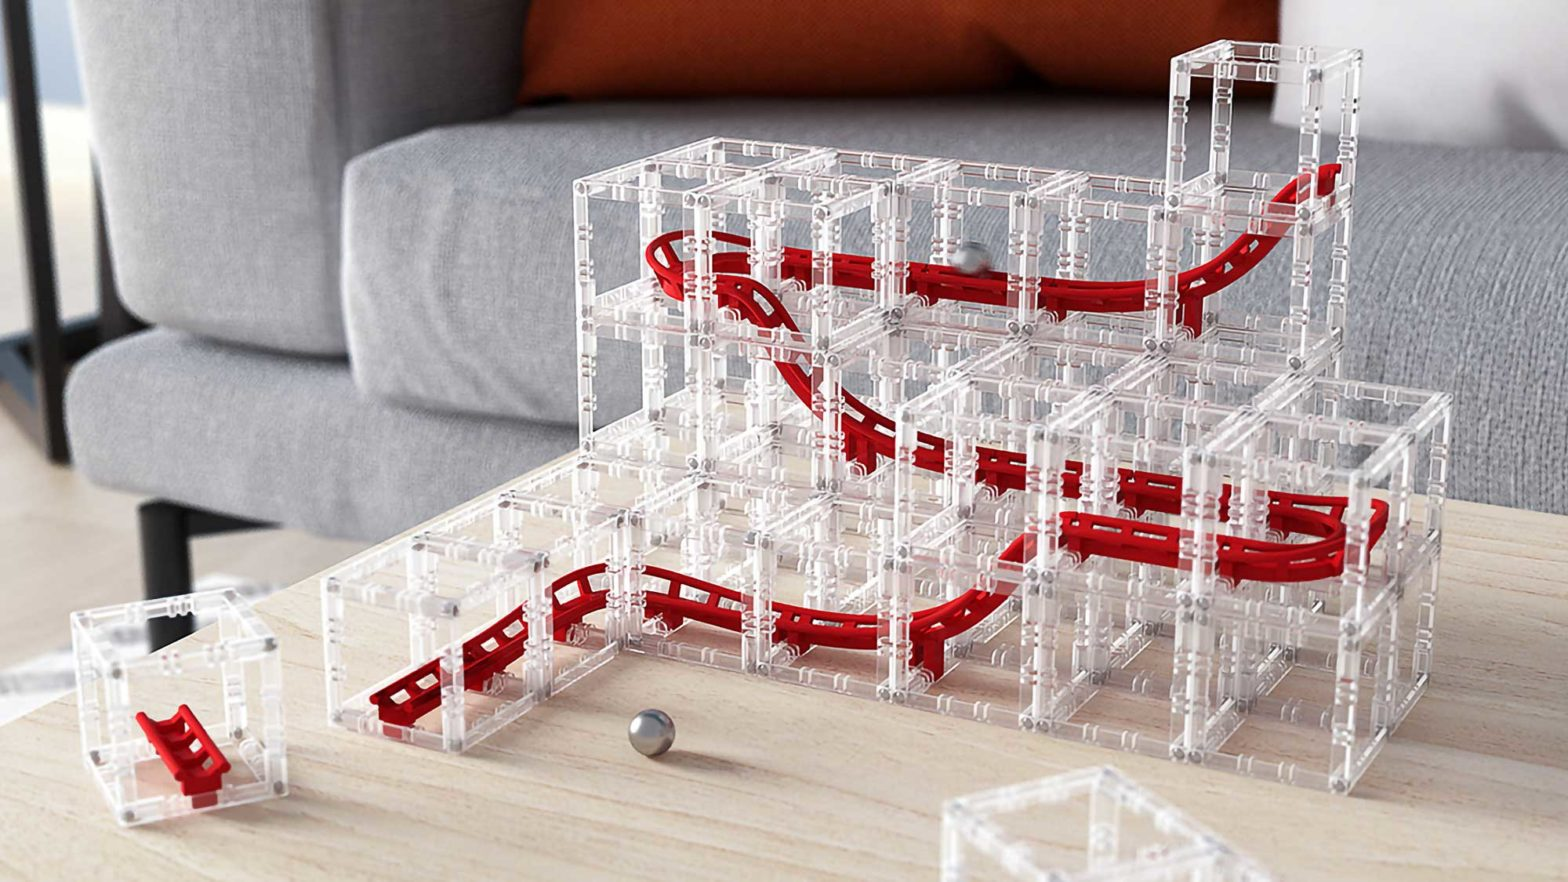 MagnetCubes Modular Blocks Marble Run Kit